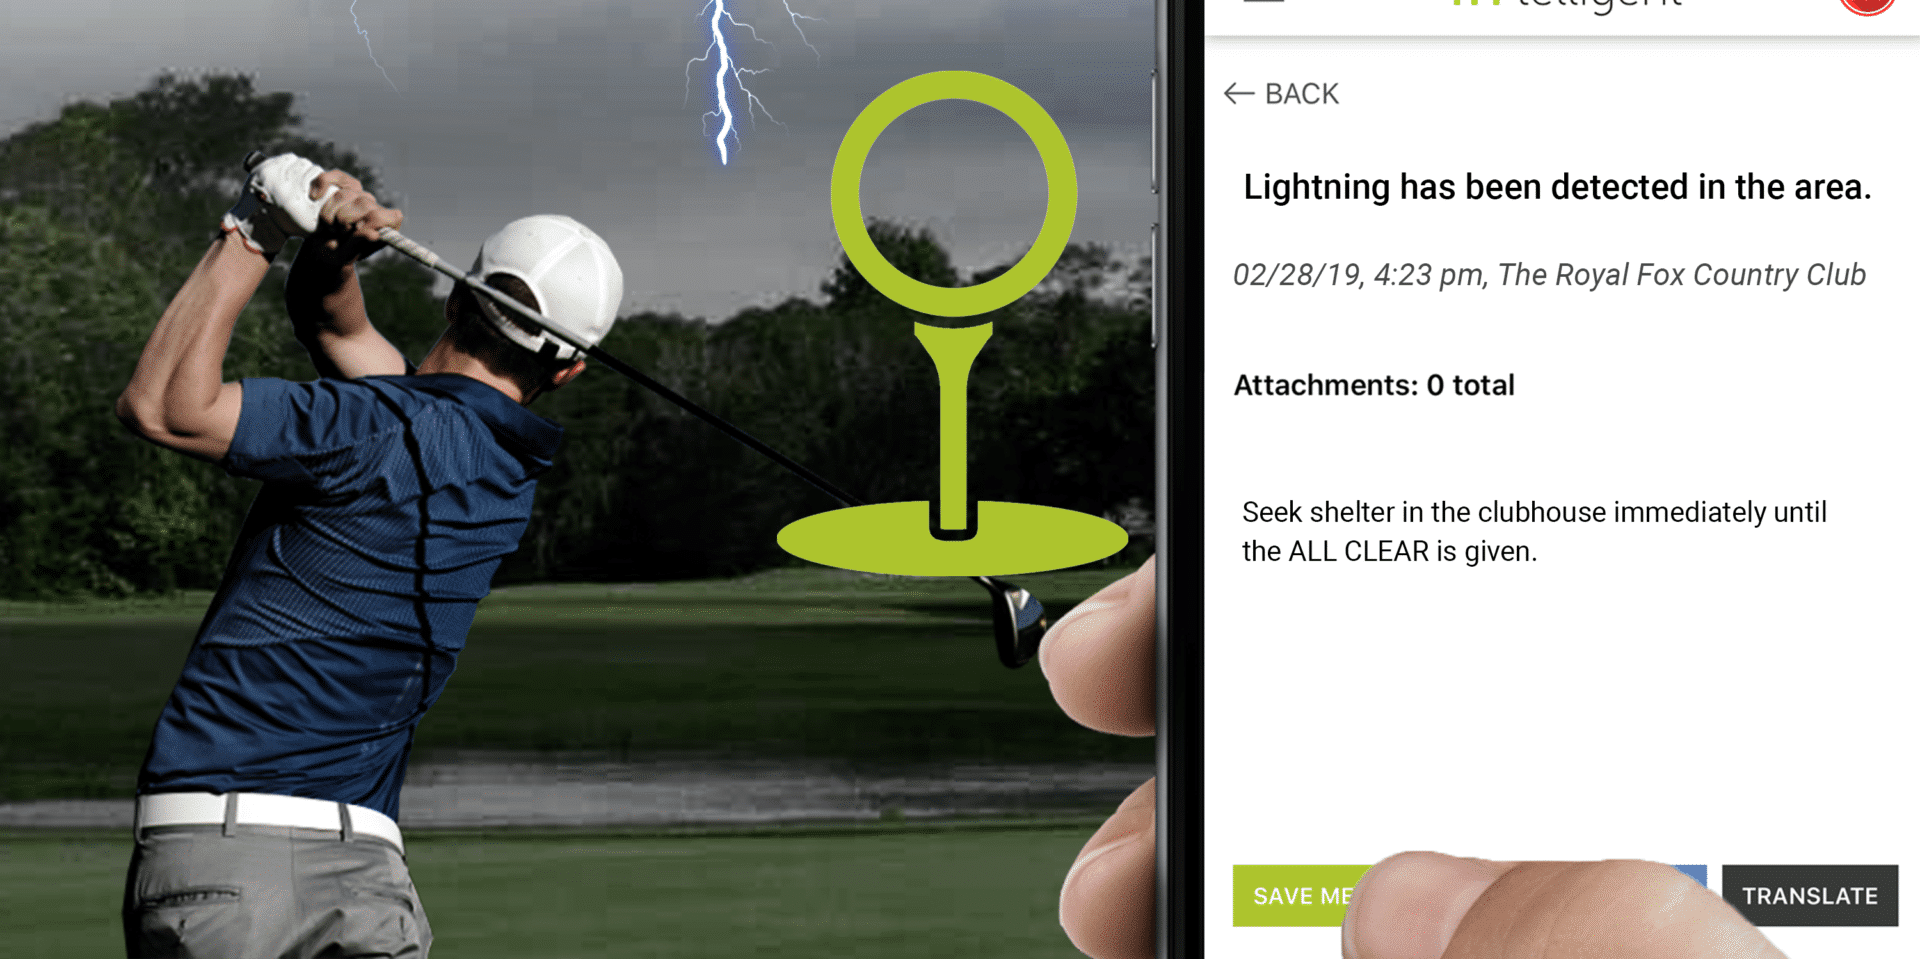 IN-TELLIGENT'S NEW OUTDOOR DIVISION DELIVERS SMARTER LIGHTNING SAFETY TO GOLF COURSES AROUND THE COUNTRY